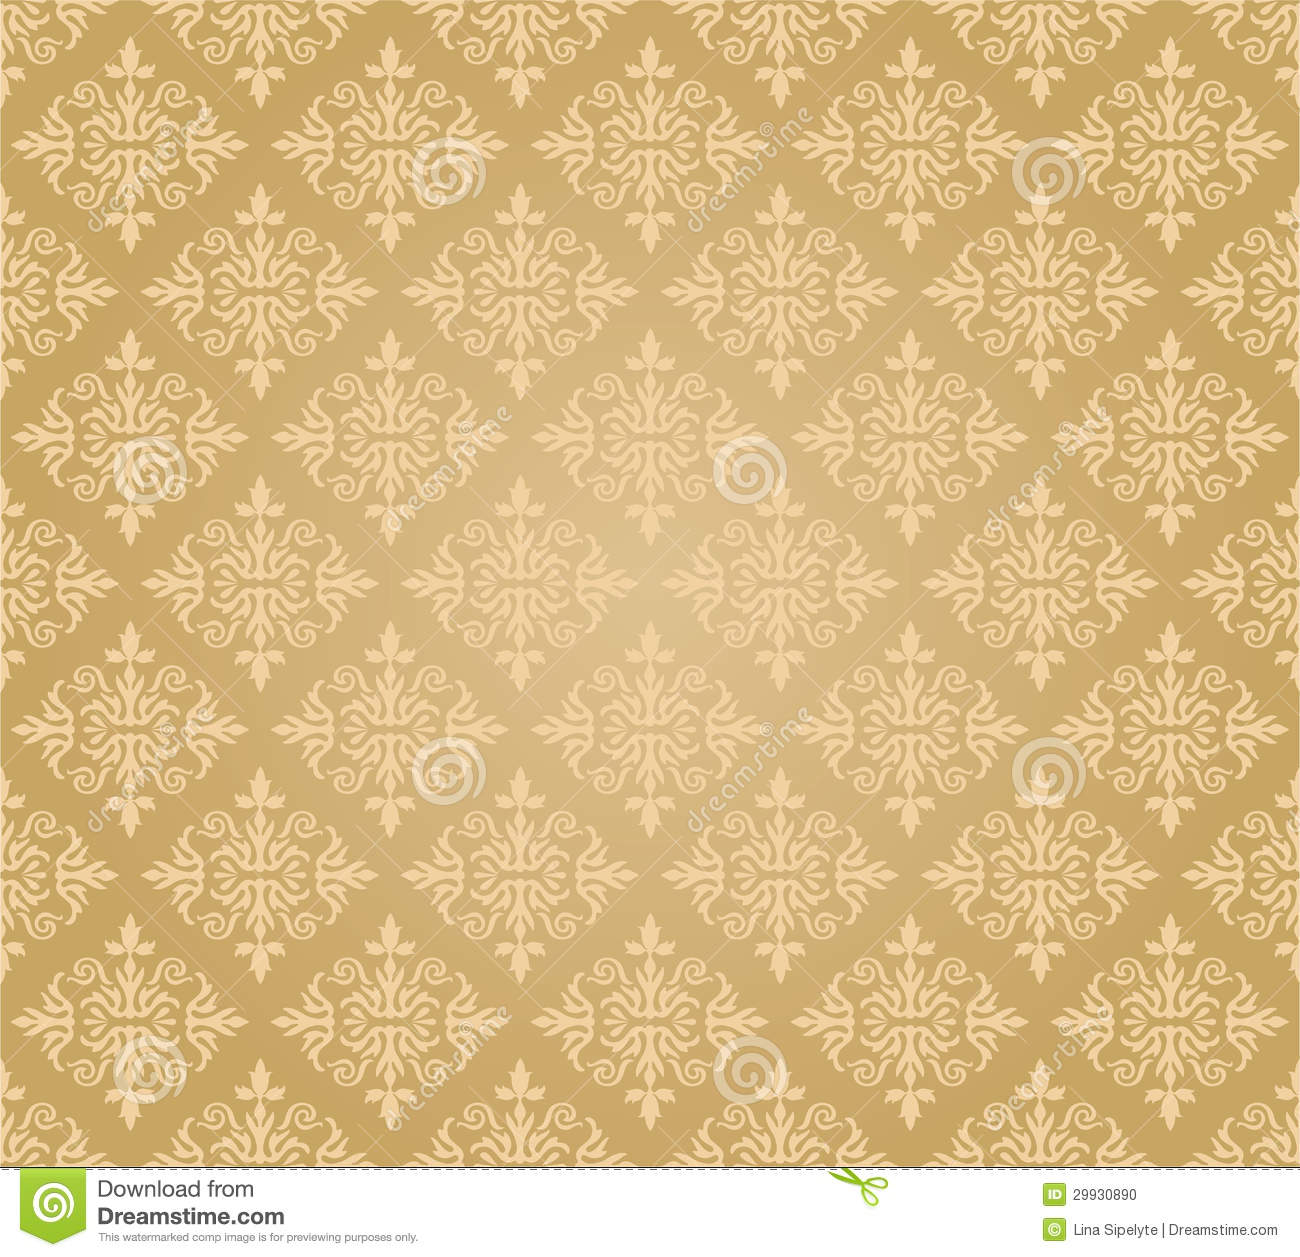 Free Download Gold Floral Pattern Wallpapers The Art Mad